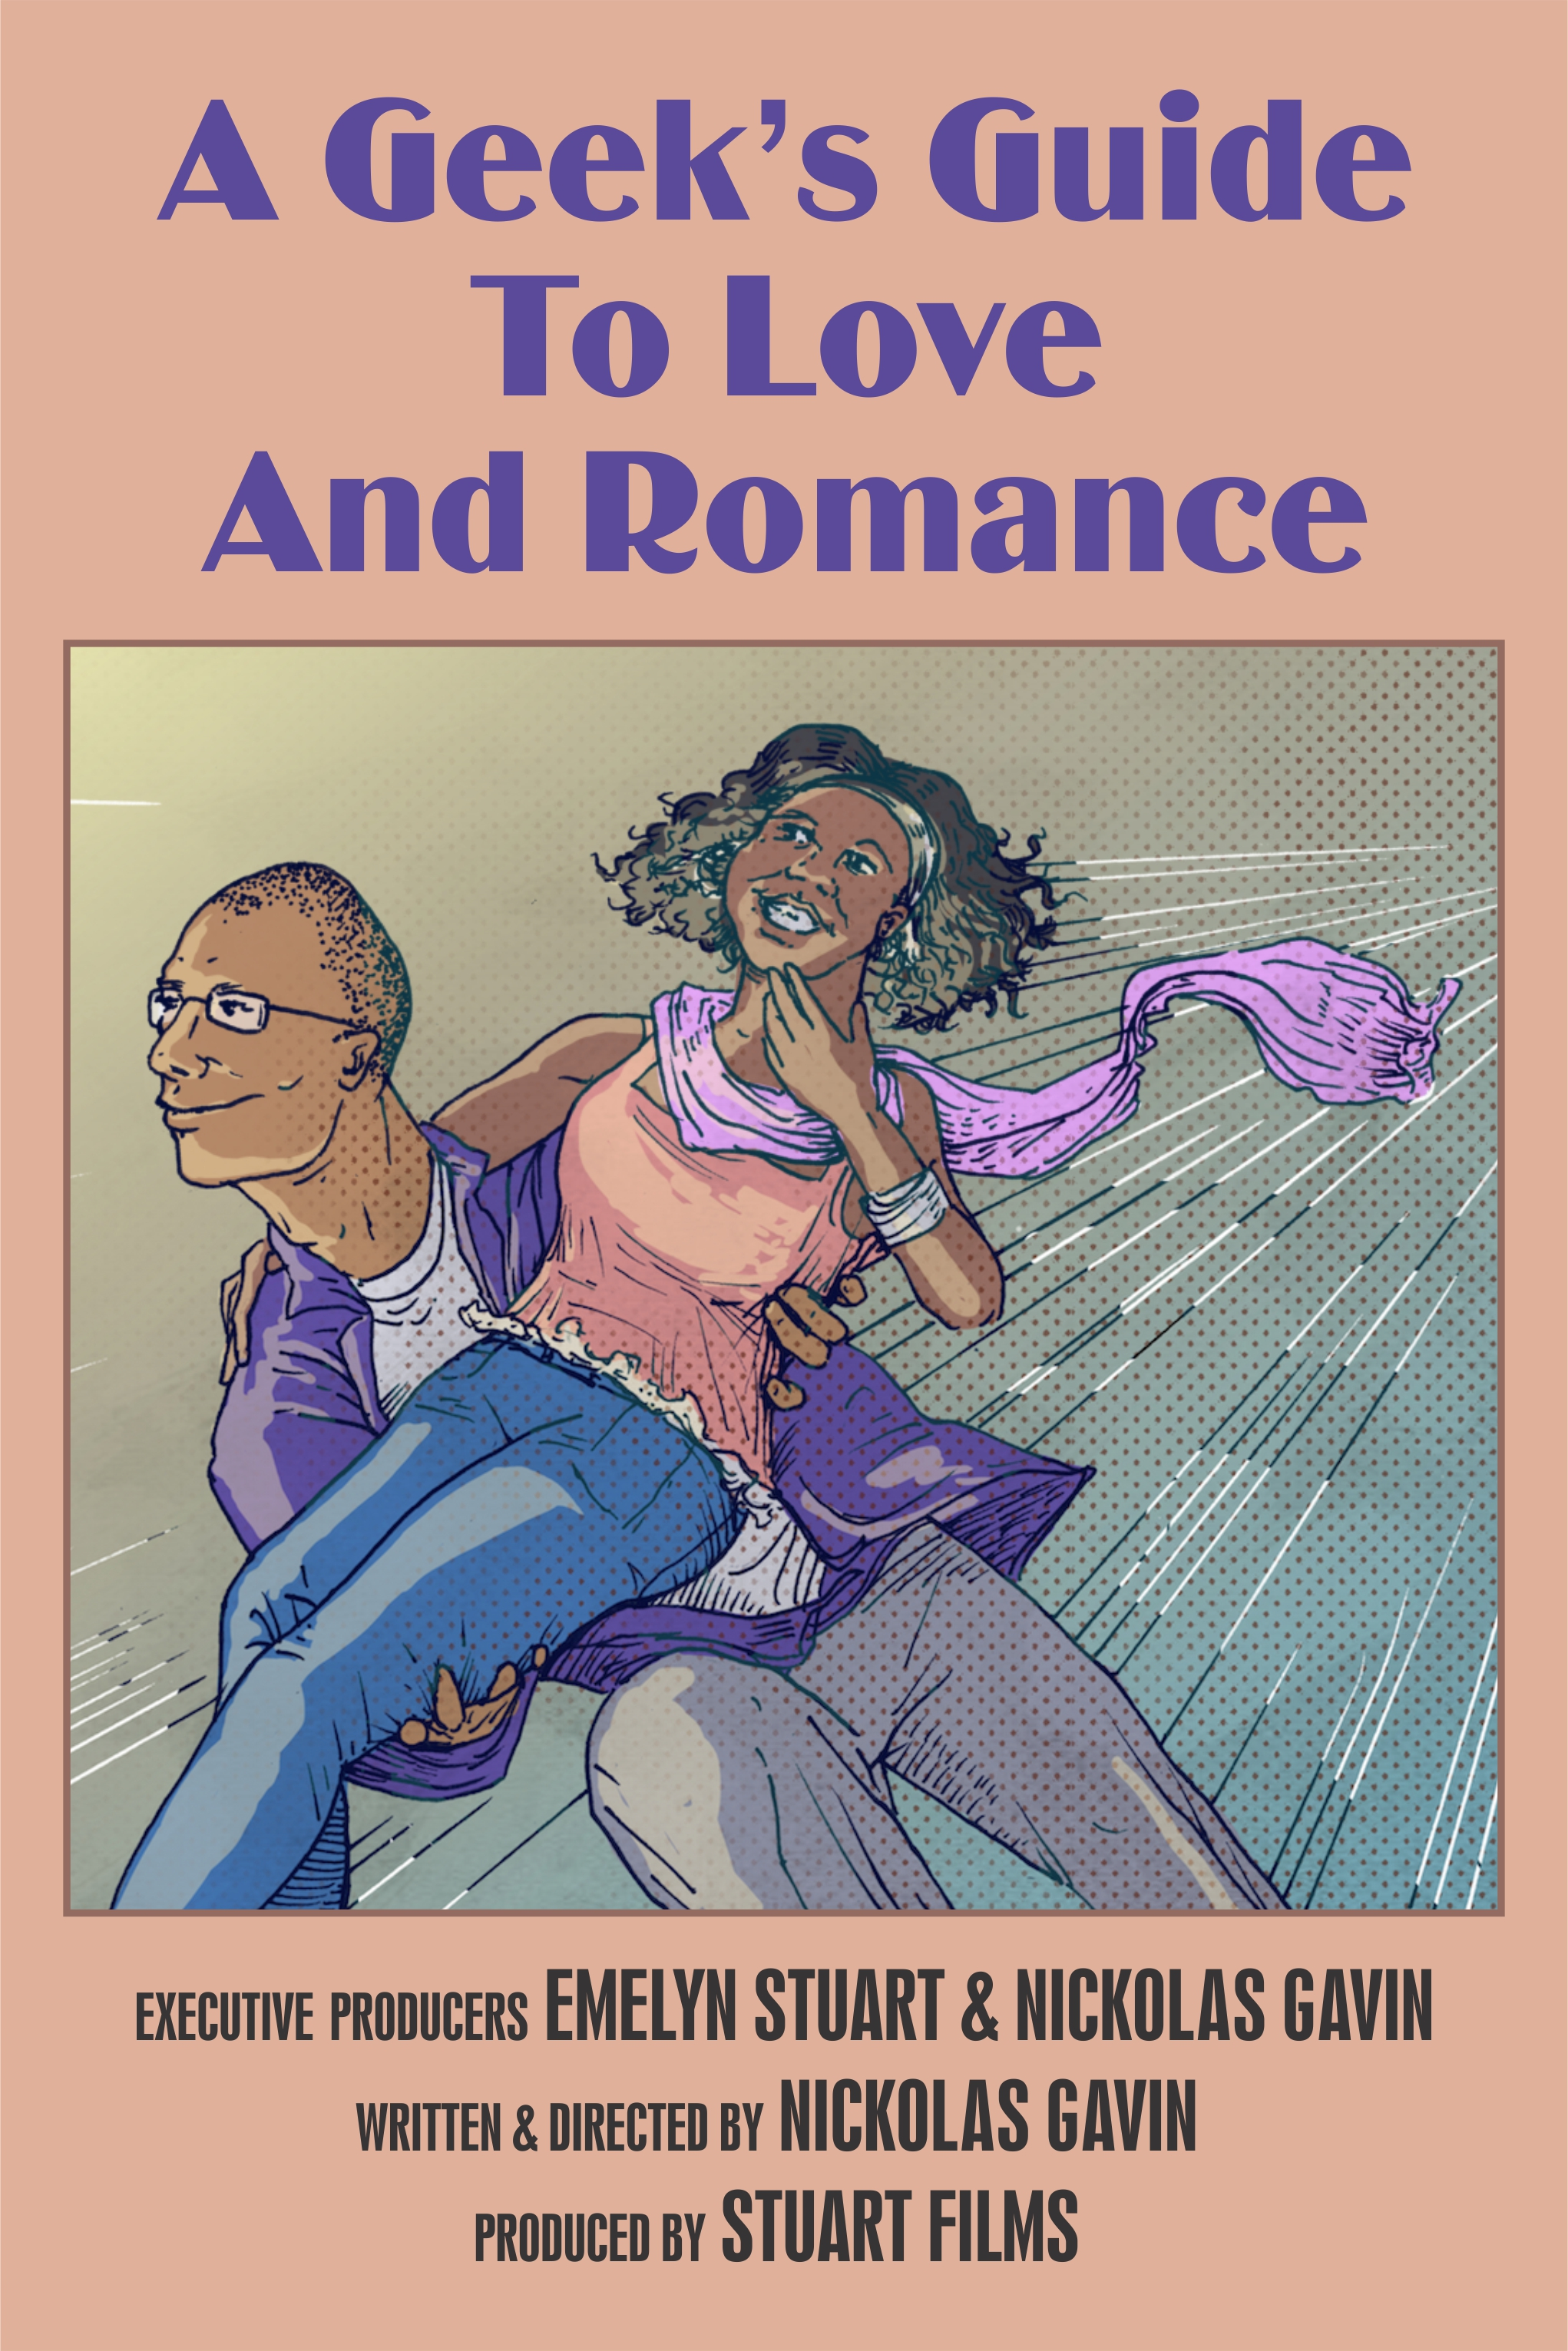 A Geek's Guide To Love & Romance